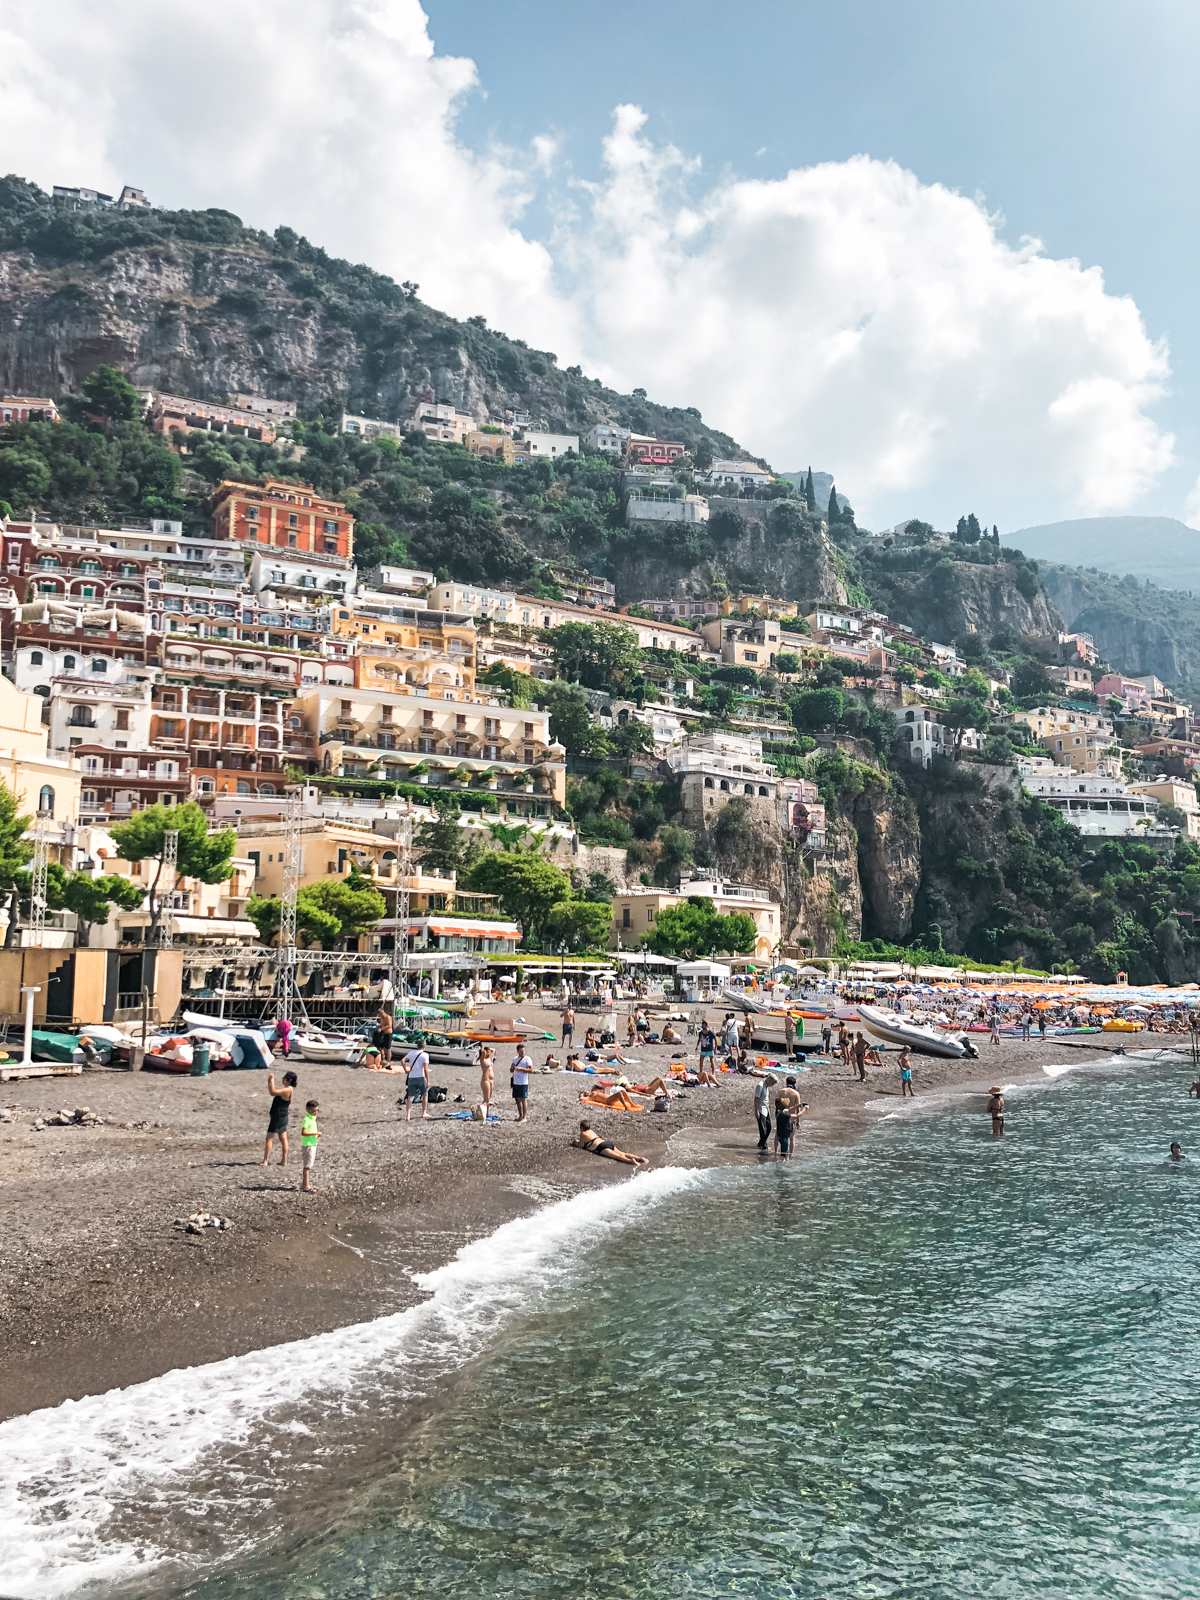 view of the buildings and homes from the beach of Positano